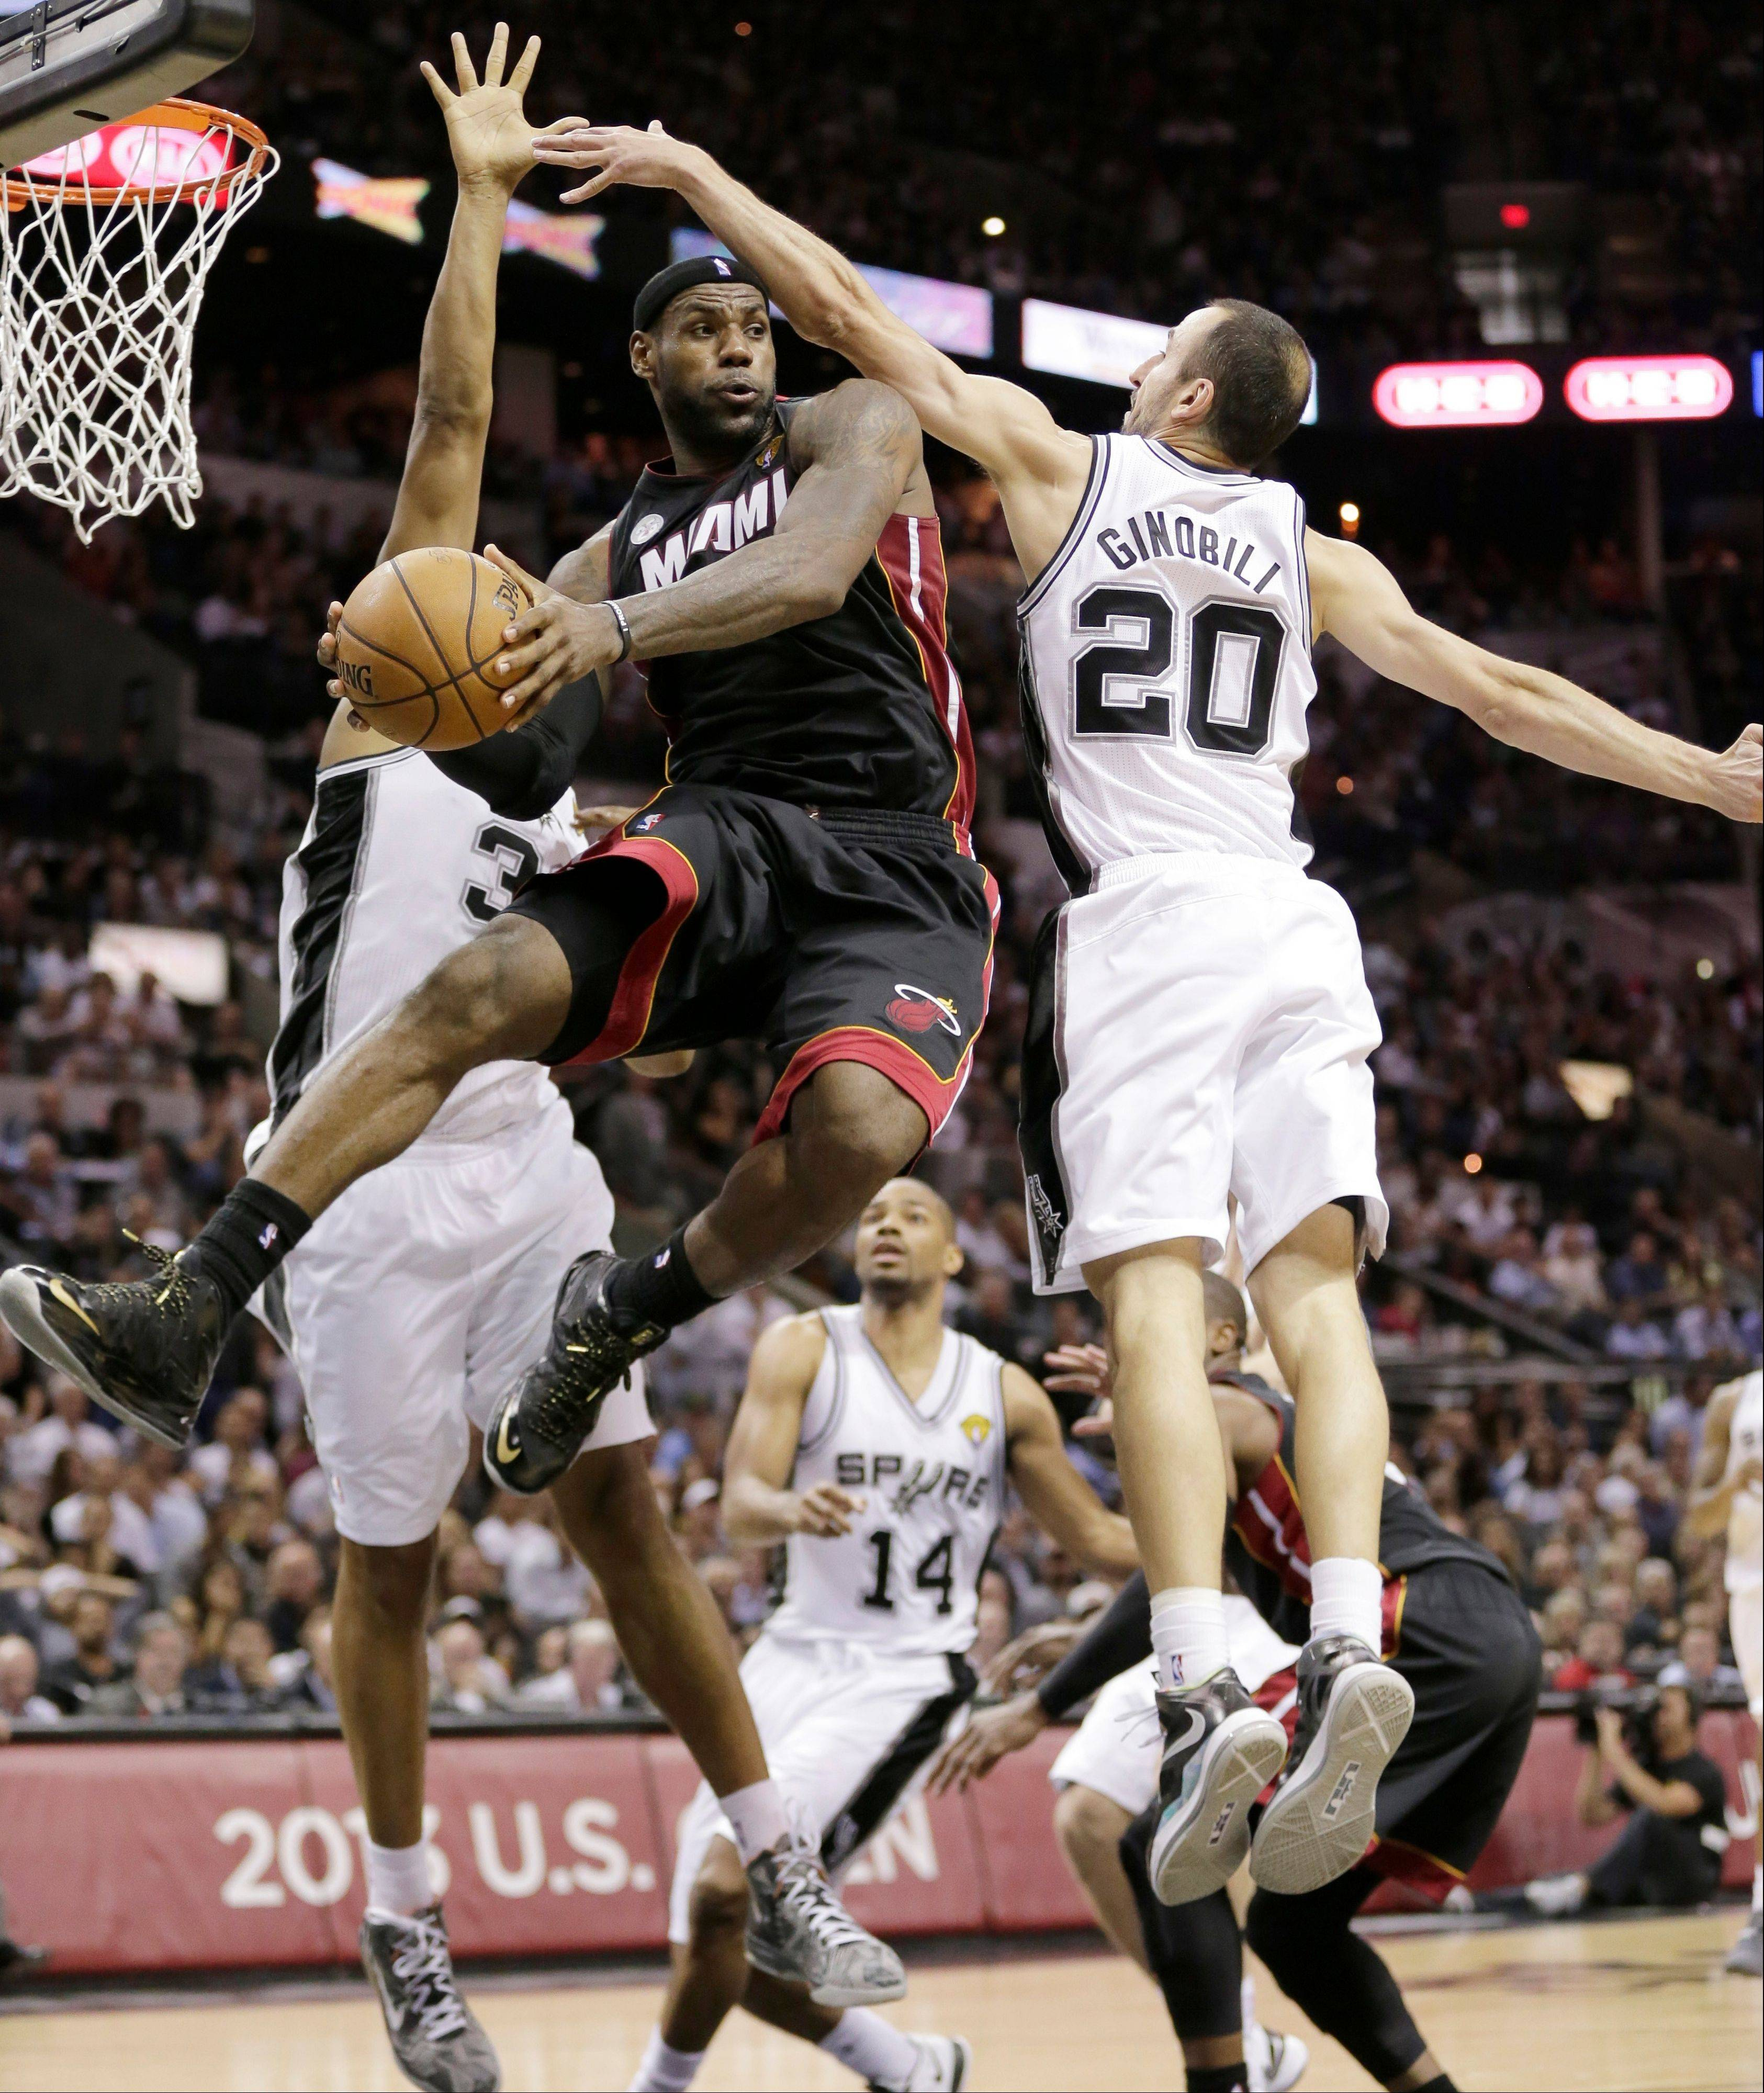 Miami Heat's LeBron James (6) passes between San Antonio Spurs' Boris Diaw (33), of France, and Manu Ginobili (20) during the second half at Game 4 of the NBA Finals basketball series Thursday in San Antonio.